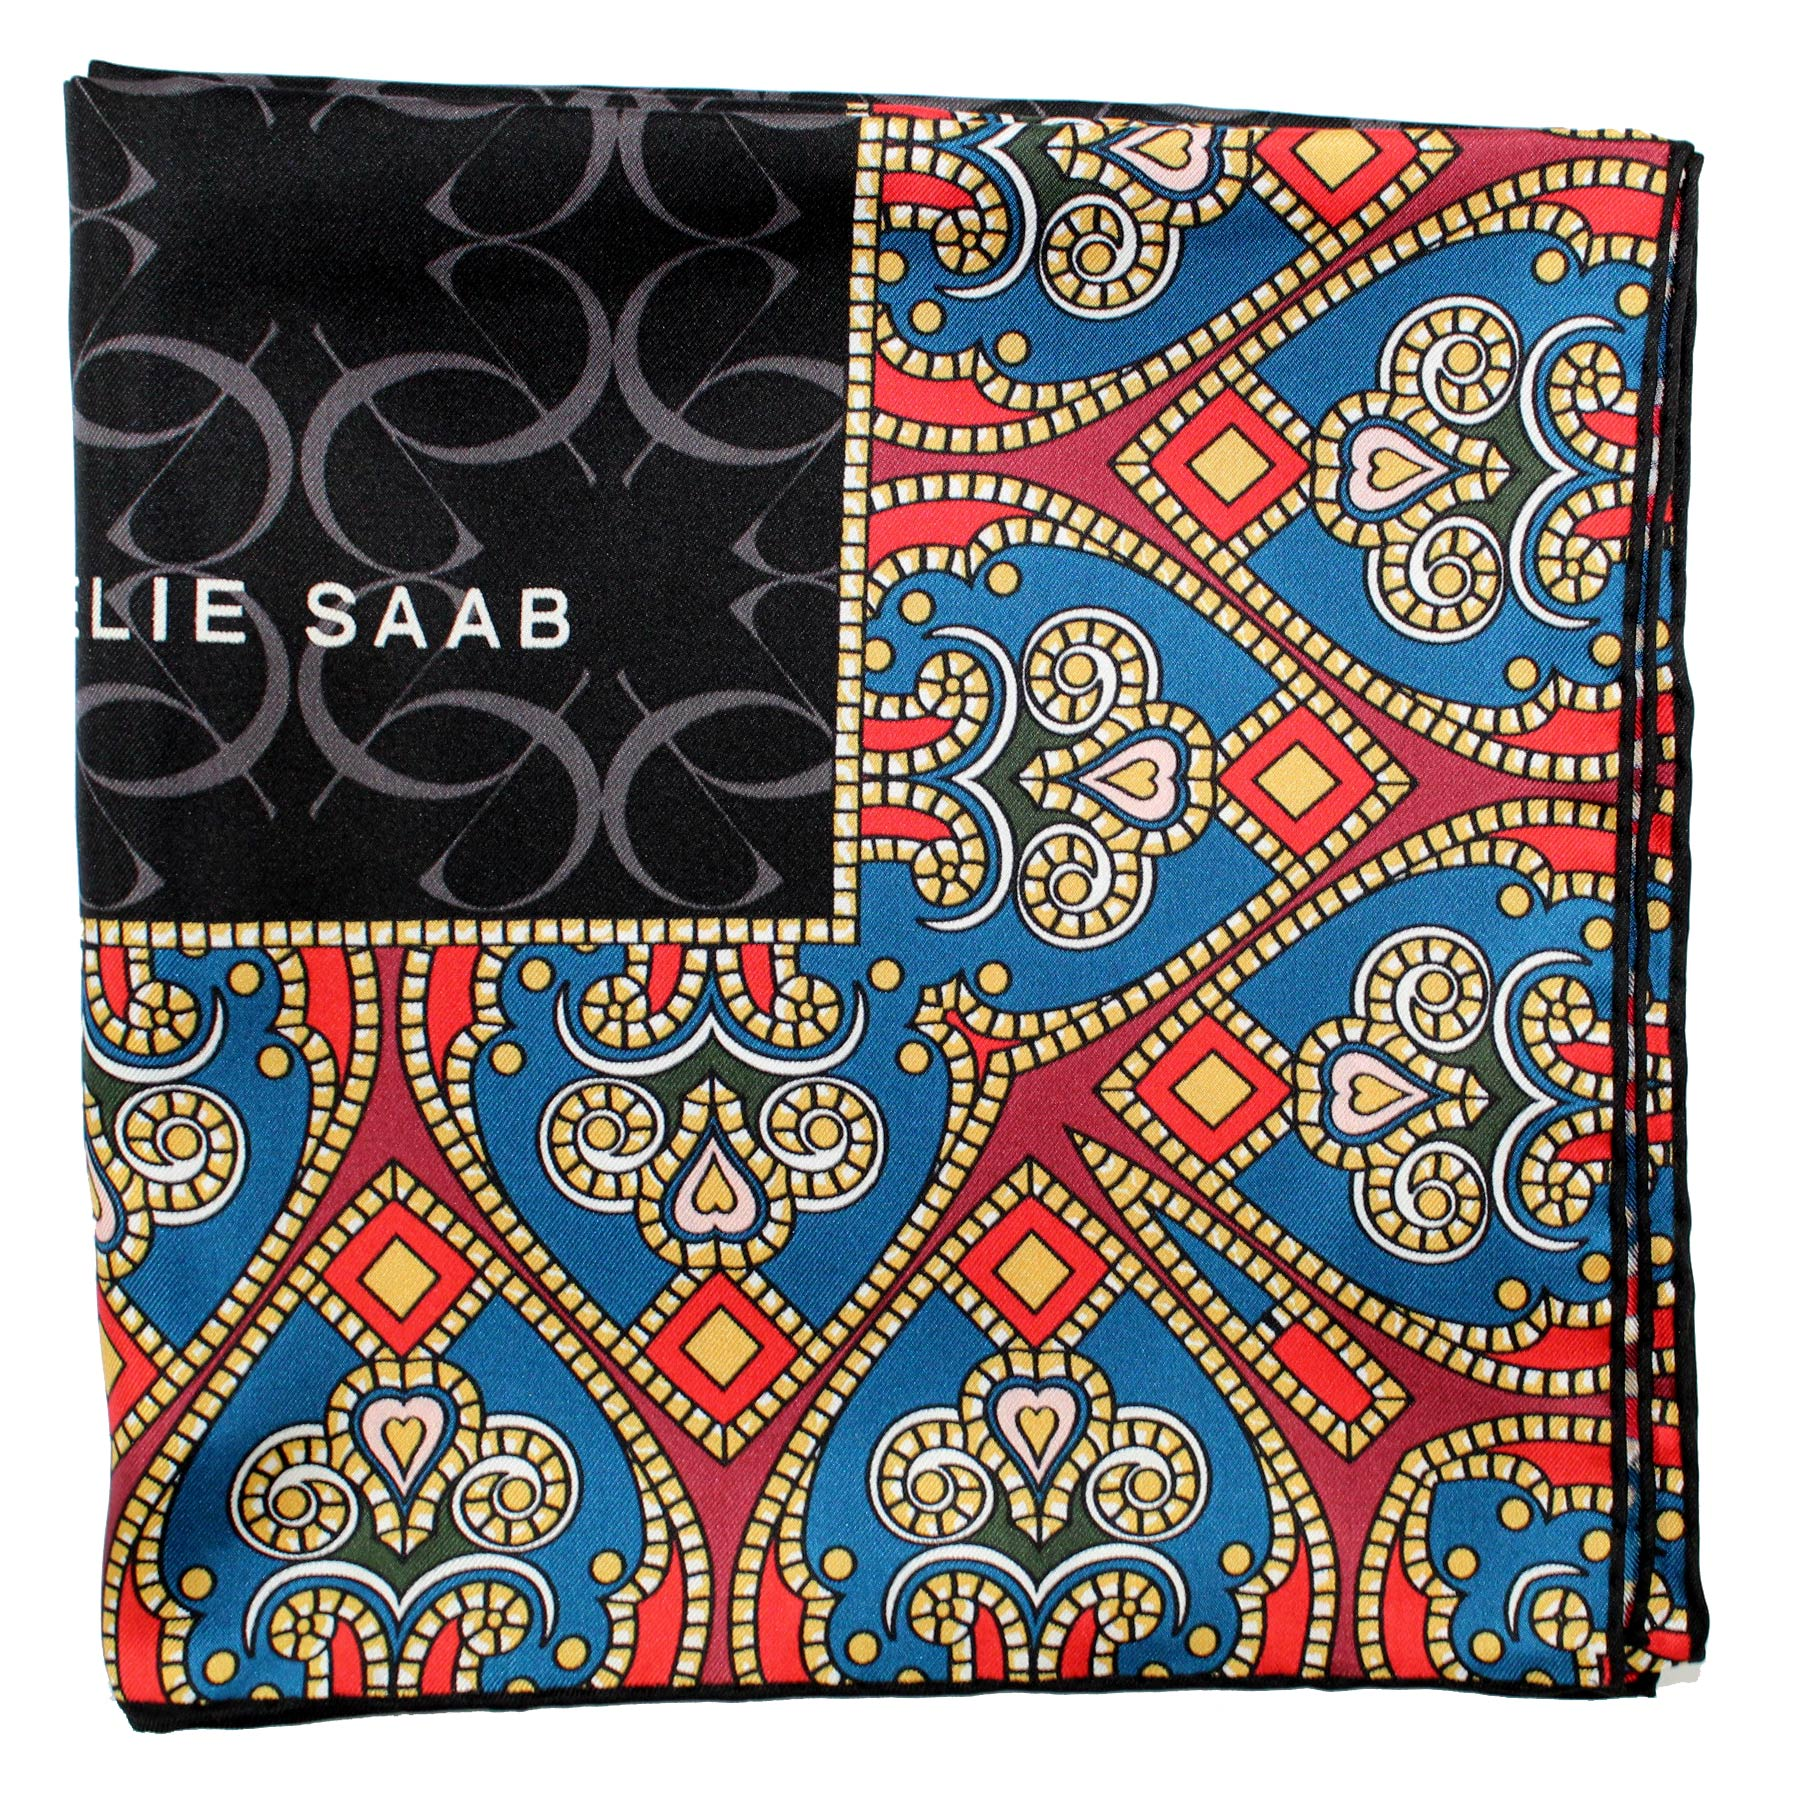 Elie Saab Scarf Black - Teal Maroon Gold Hearts Design - Large Twill Silk Square Scarf